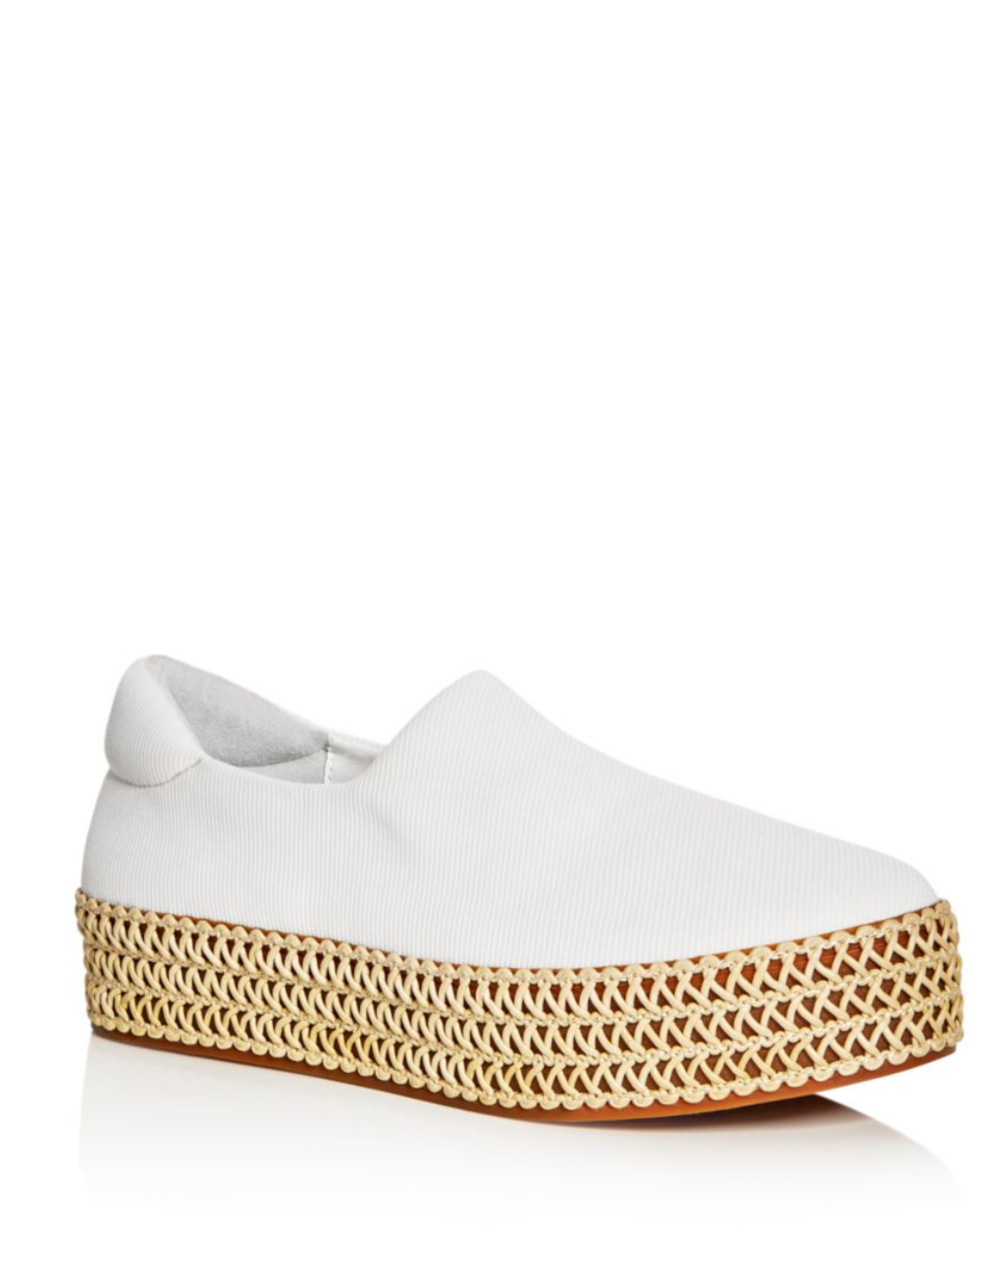 Opening Ceremony Platform Sneakers ($175) - Click on Image to View